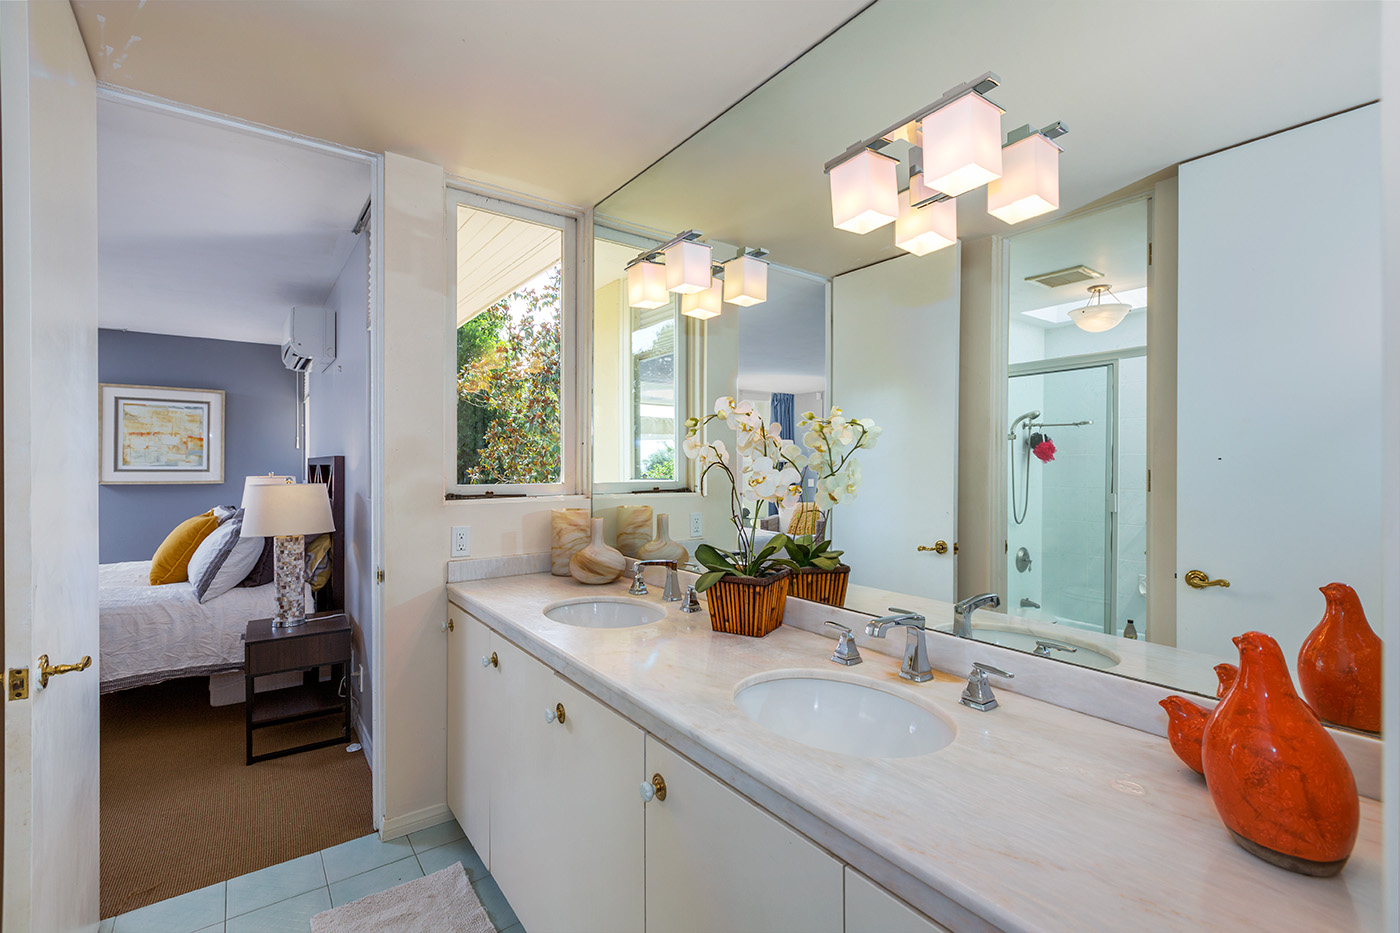 Bathroom with Twin Sinks